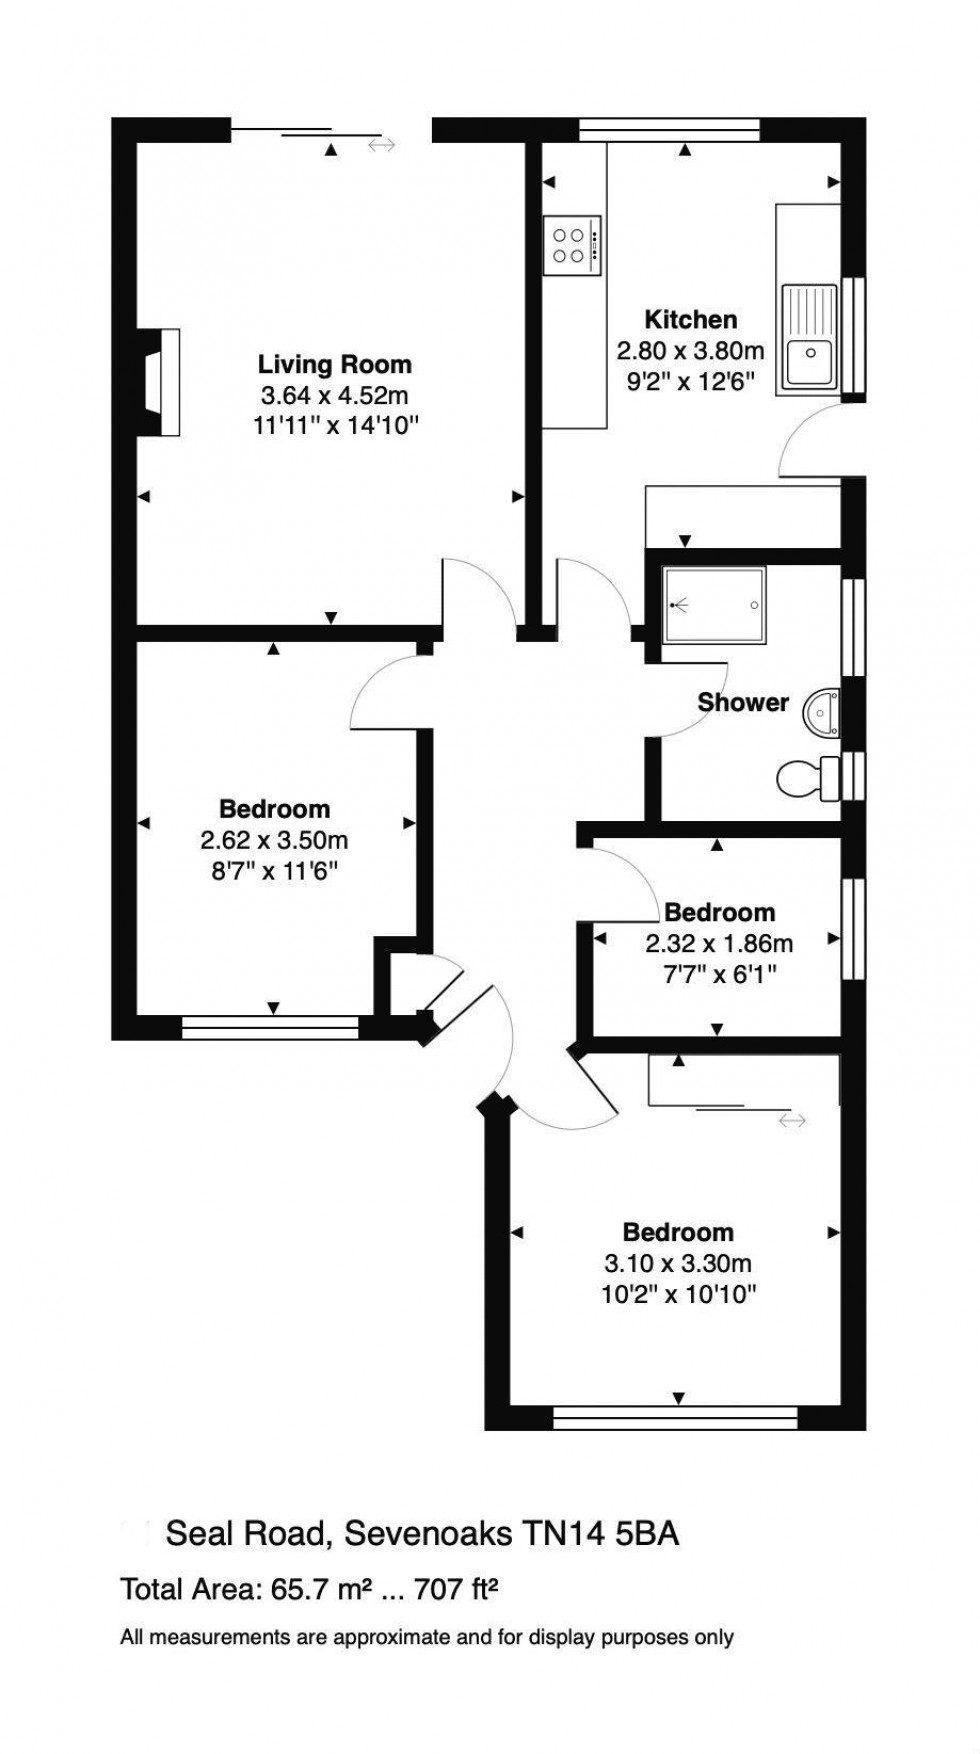 Floorplan for Semi-Detached Bungalow Walking Distance to Bat & Ball Station with Development Potential stpp, Seal Road, Sevenoaks